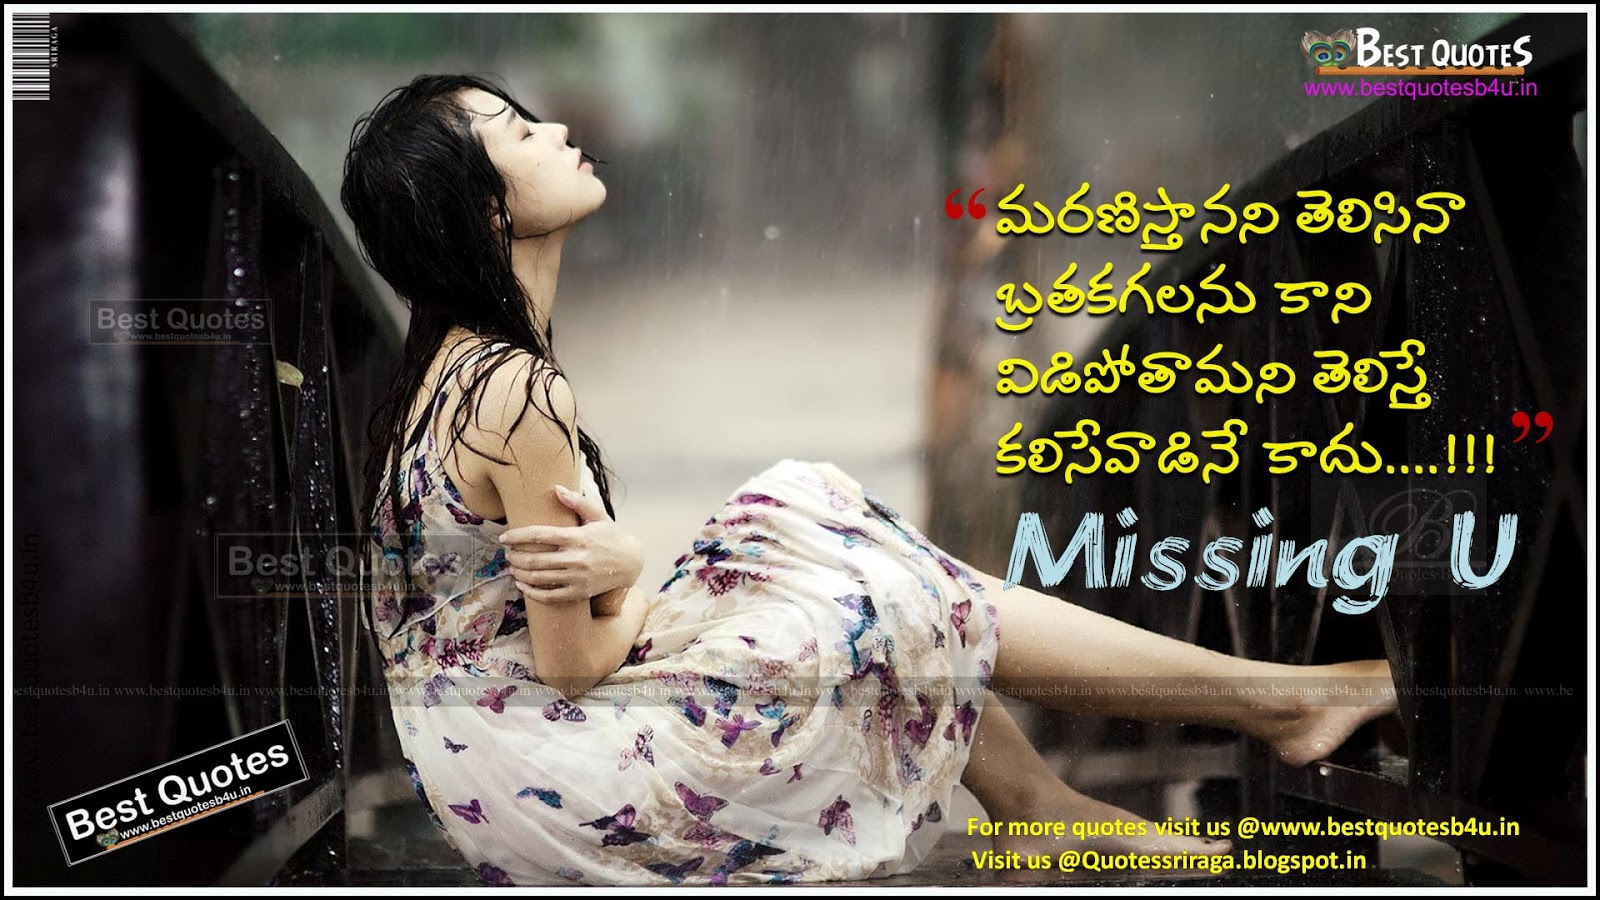 Love Failure Breakup Missing You Quotations In Telugu